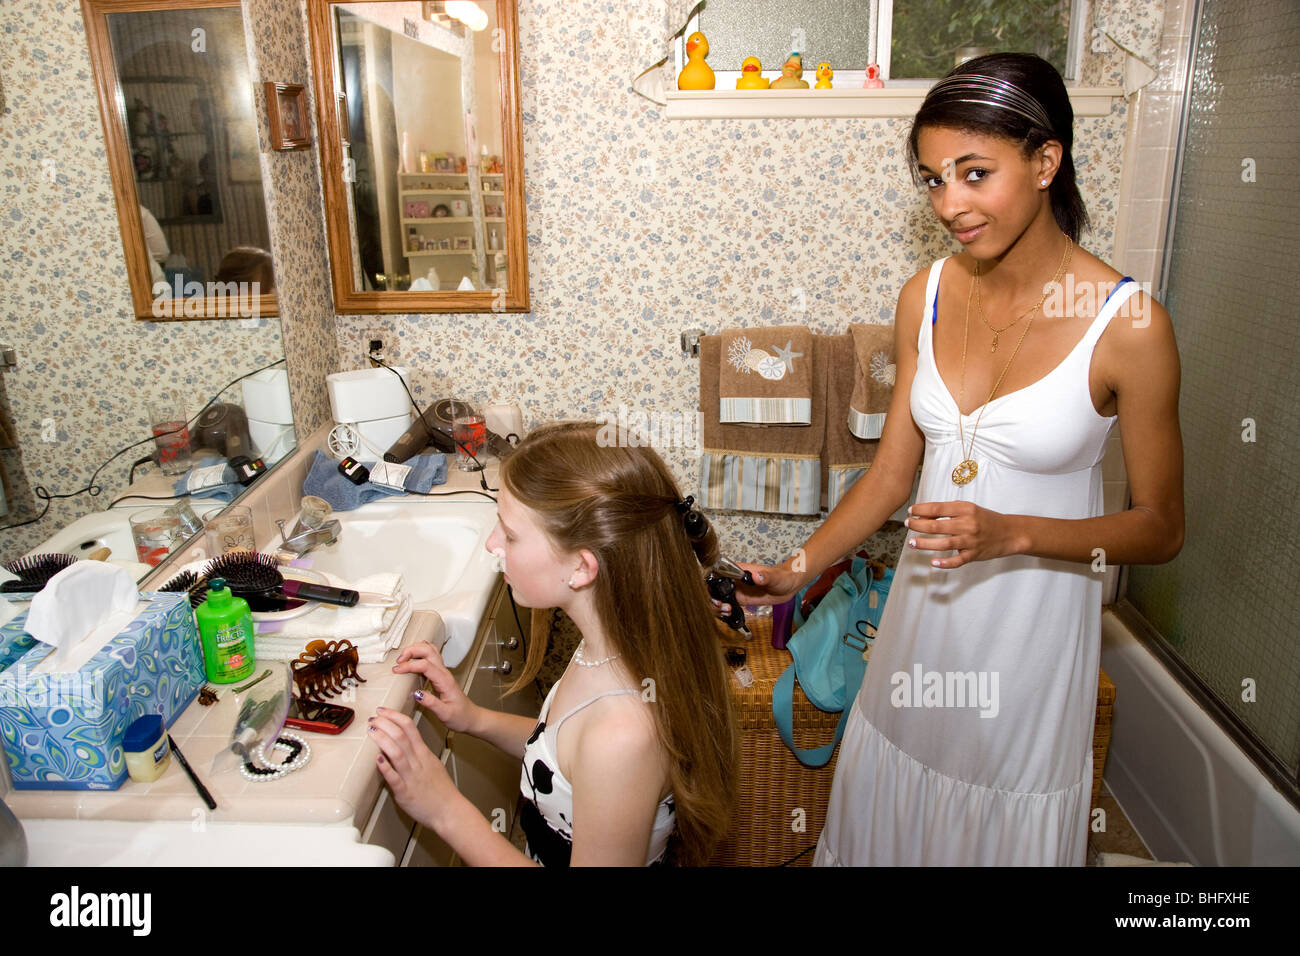 Photos of girl without any cloth in bathroom - Preparing For Their Formal Dance African American Girl Doing Her Friends Hair In The Bathroom On Her Knees